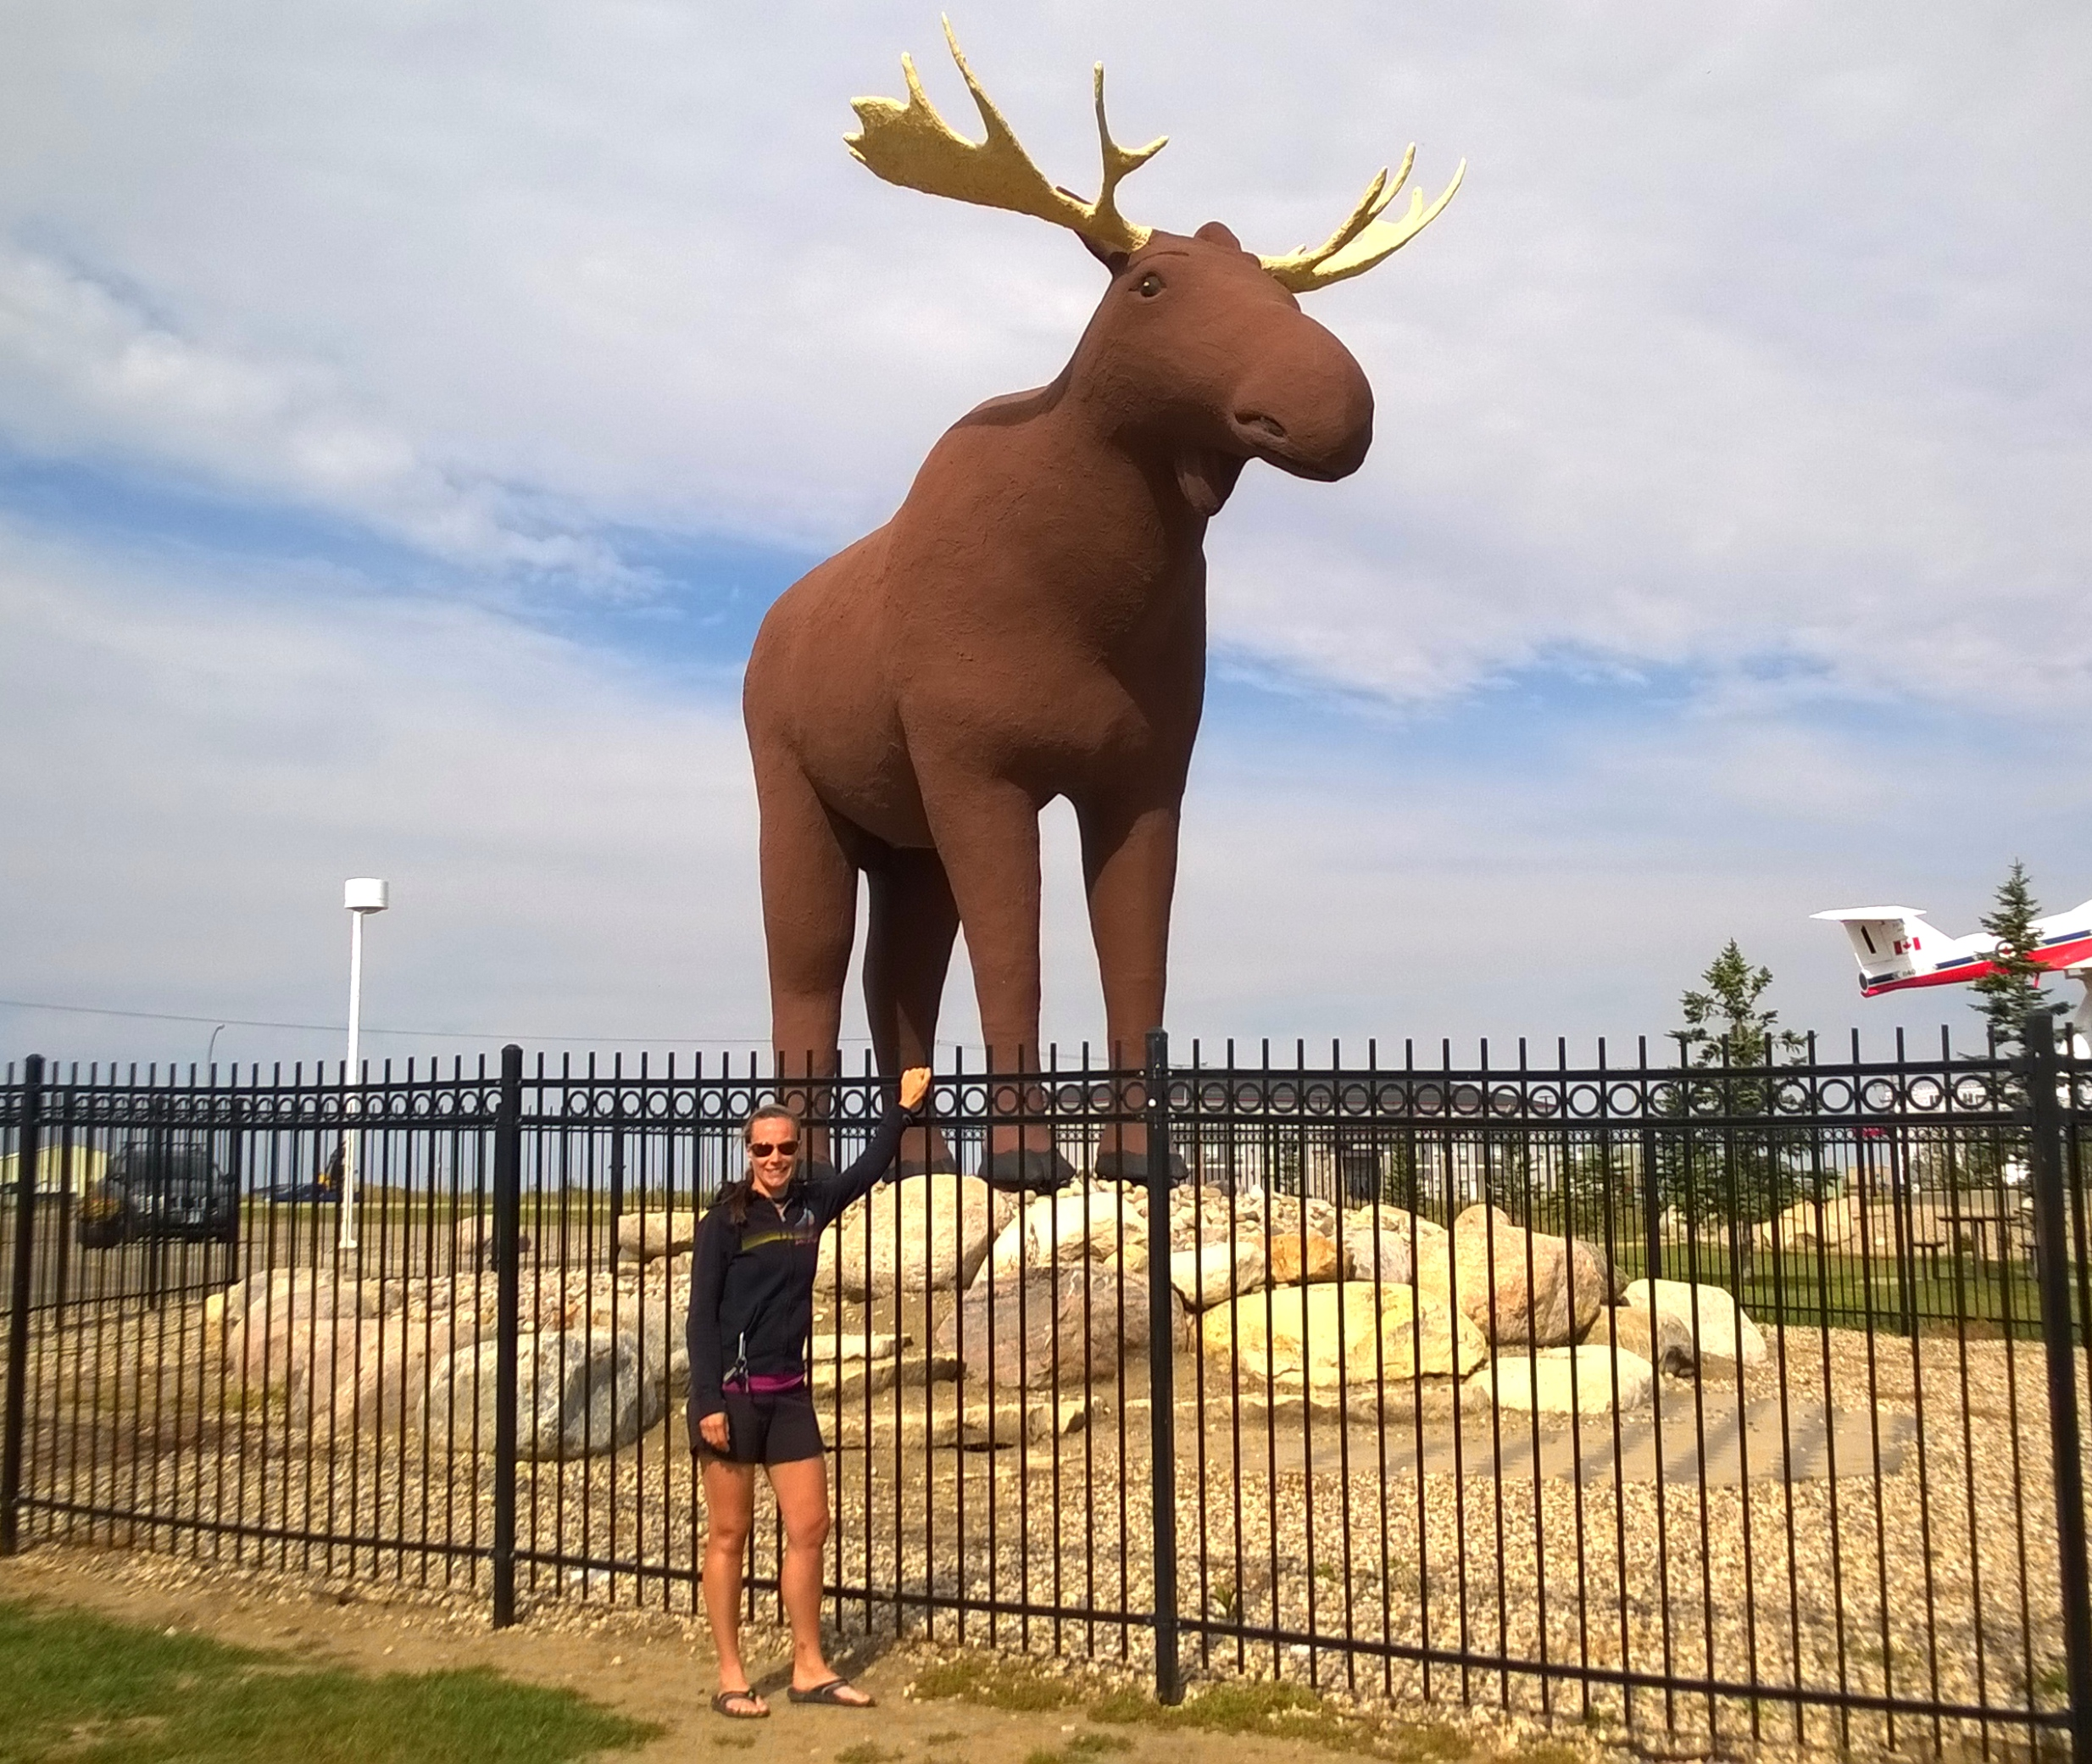 Mac the world's largest Moose, located in Moose Jaw,